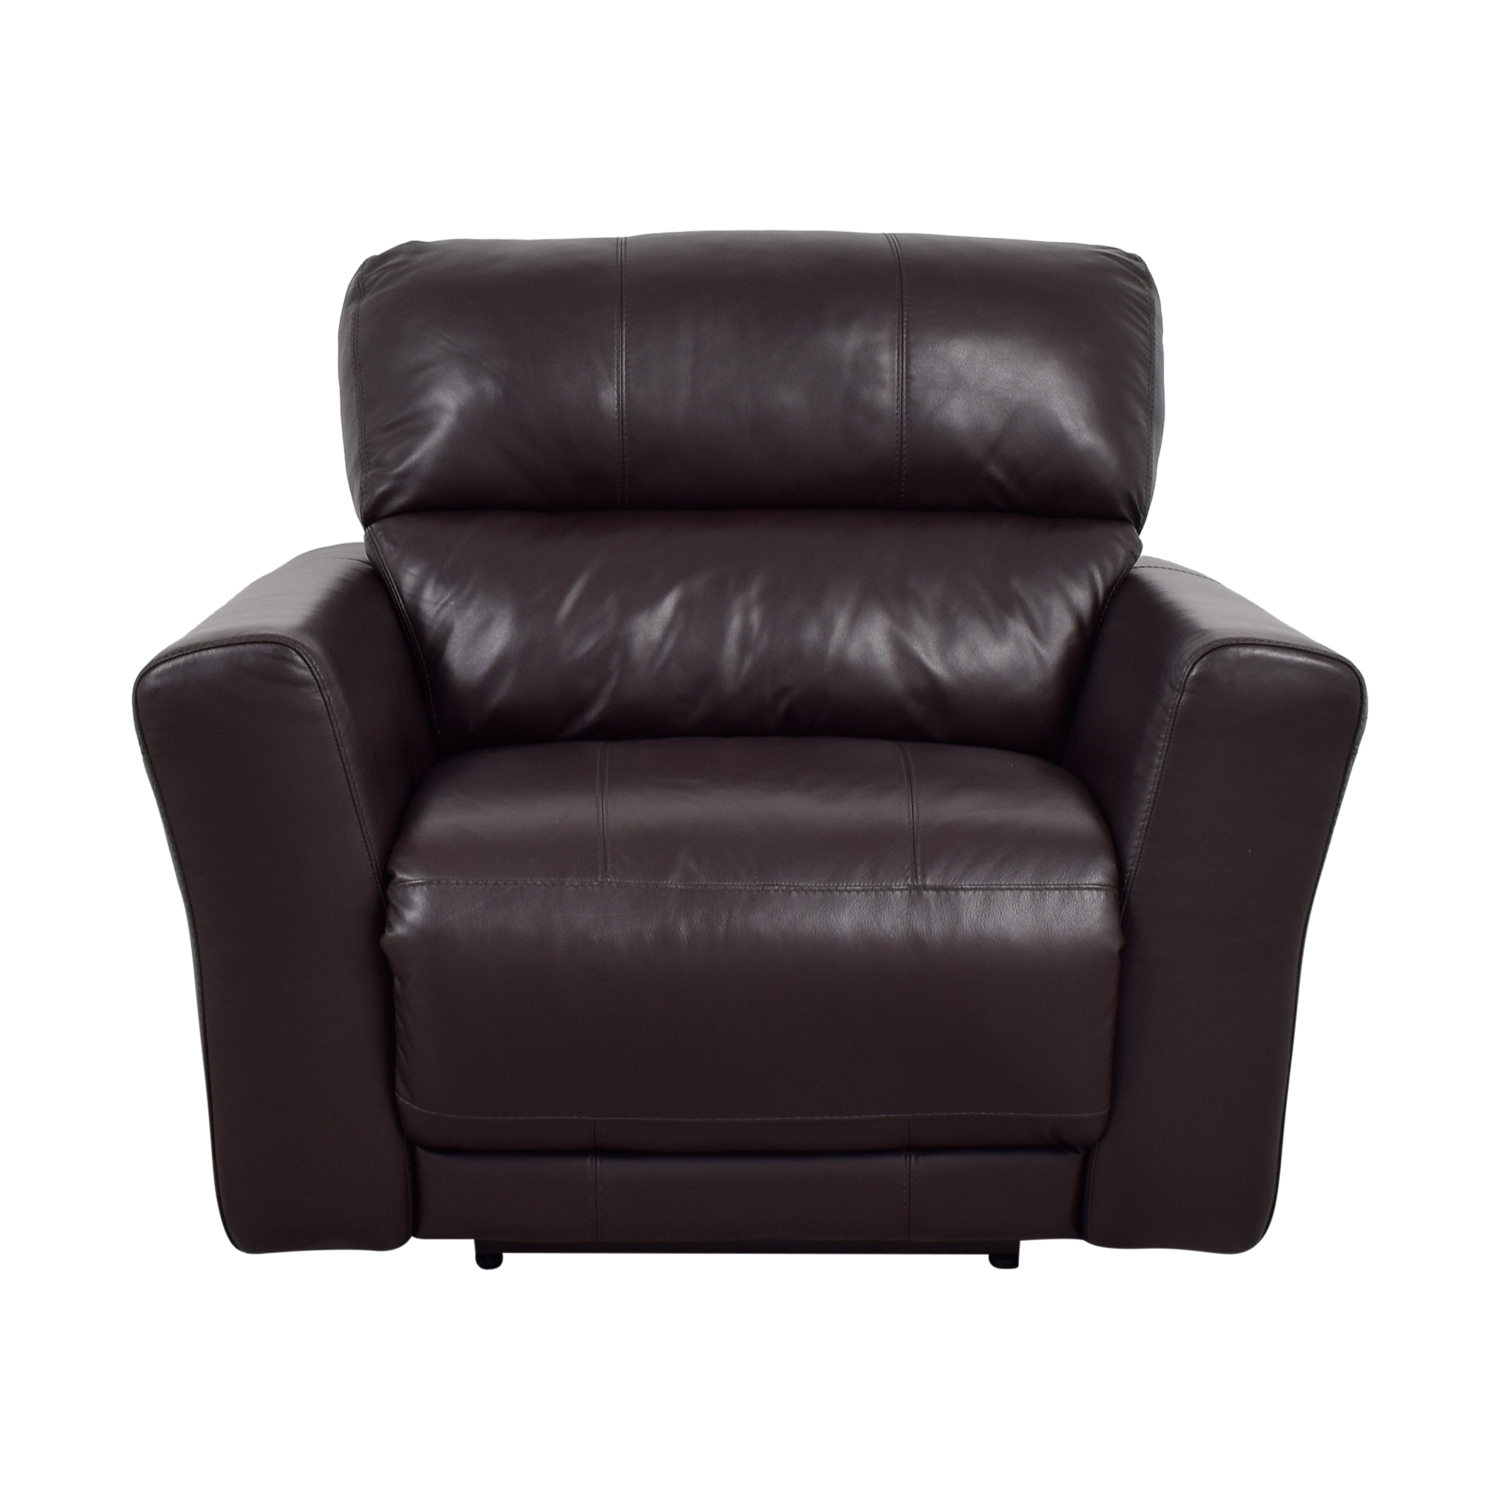 Macy's Macy's Chocolate Leather Recliner for sale